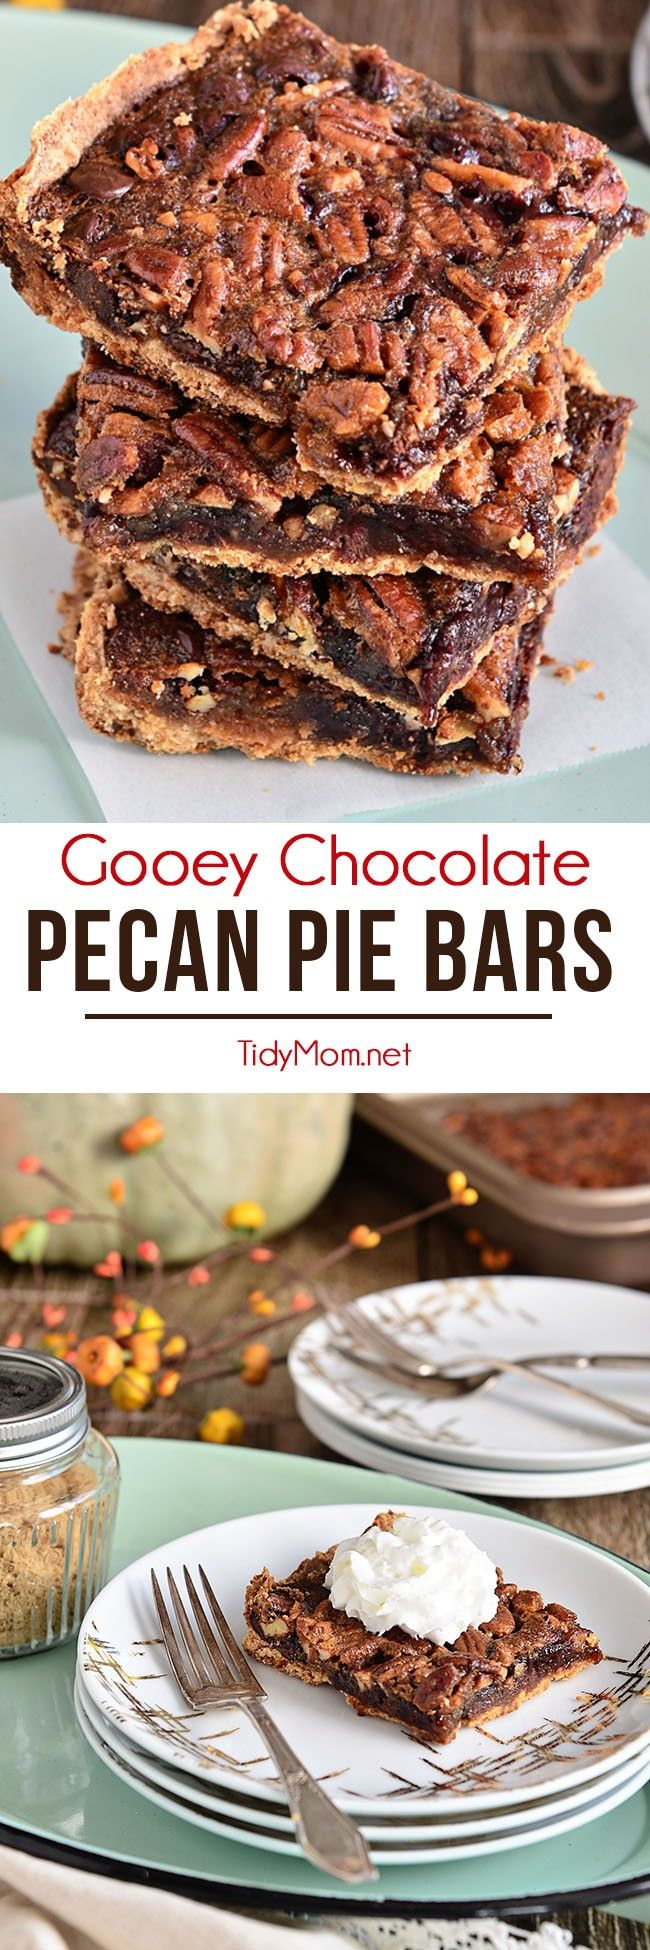 Fingers were licked, not a crumb left on a plate. This pecan pie bar recipe just may replace the pie altogether. Gooey Chocolate Pecan Pie Bars!